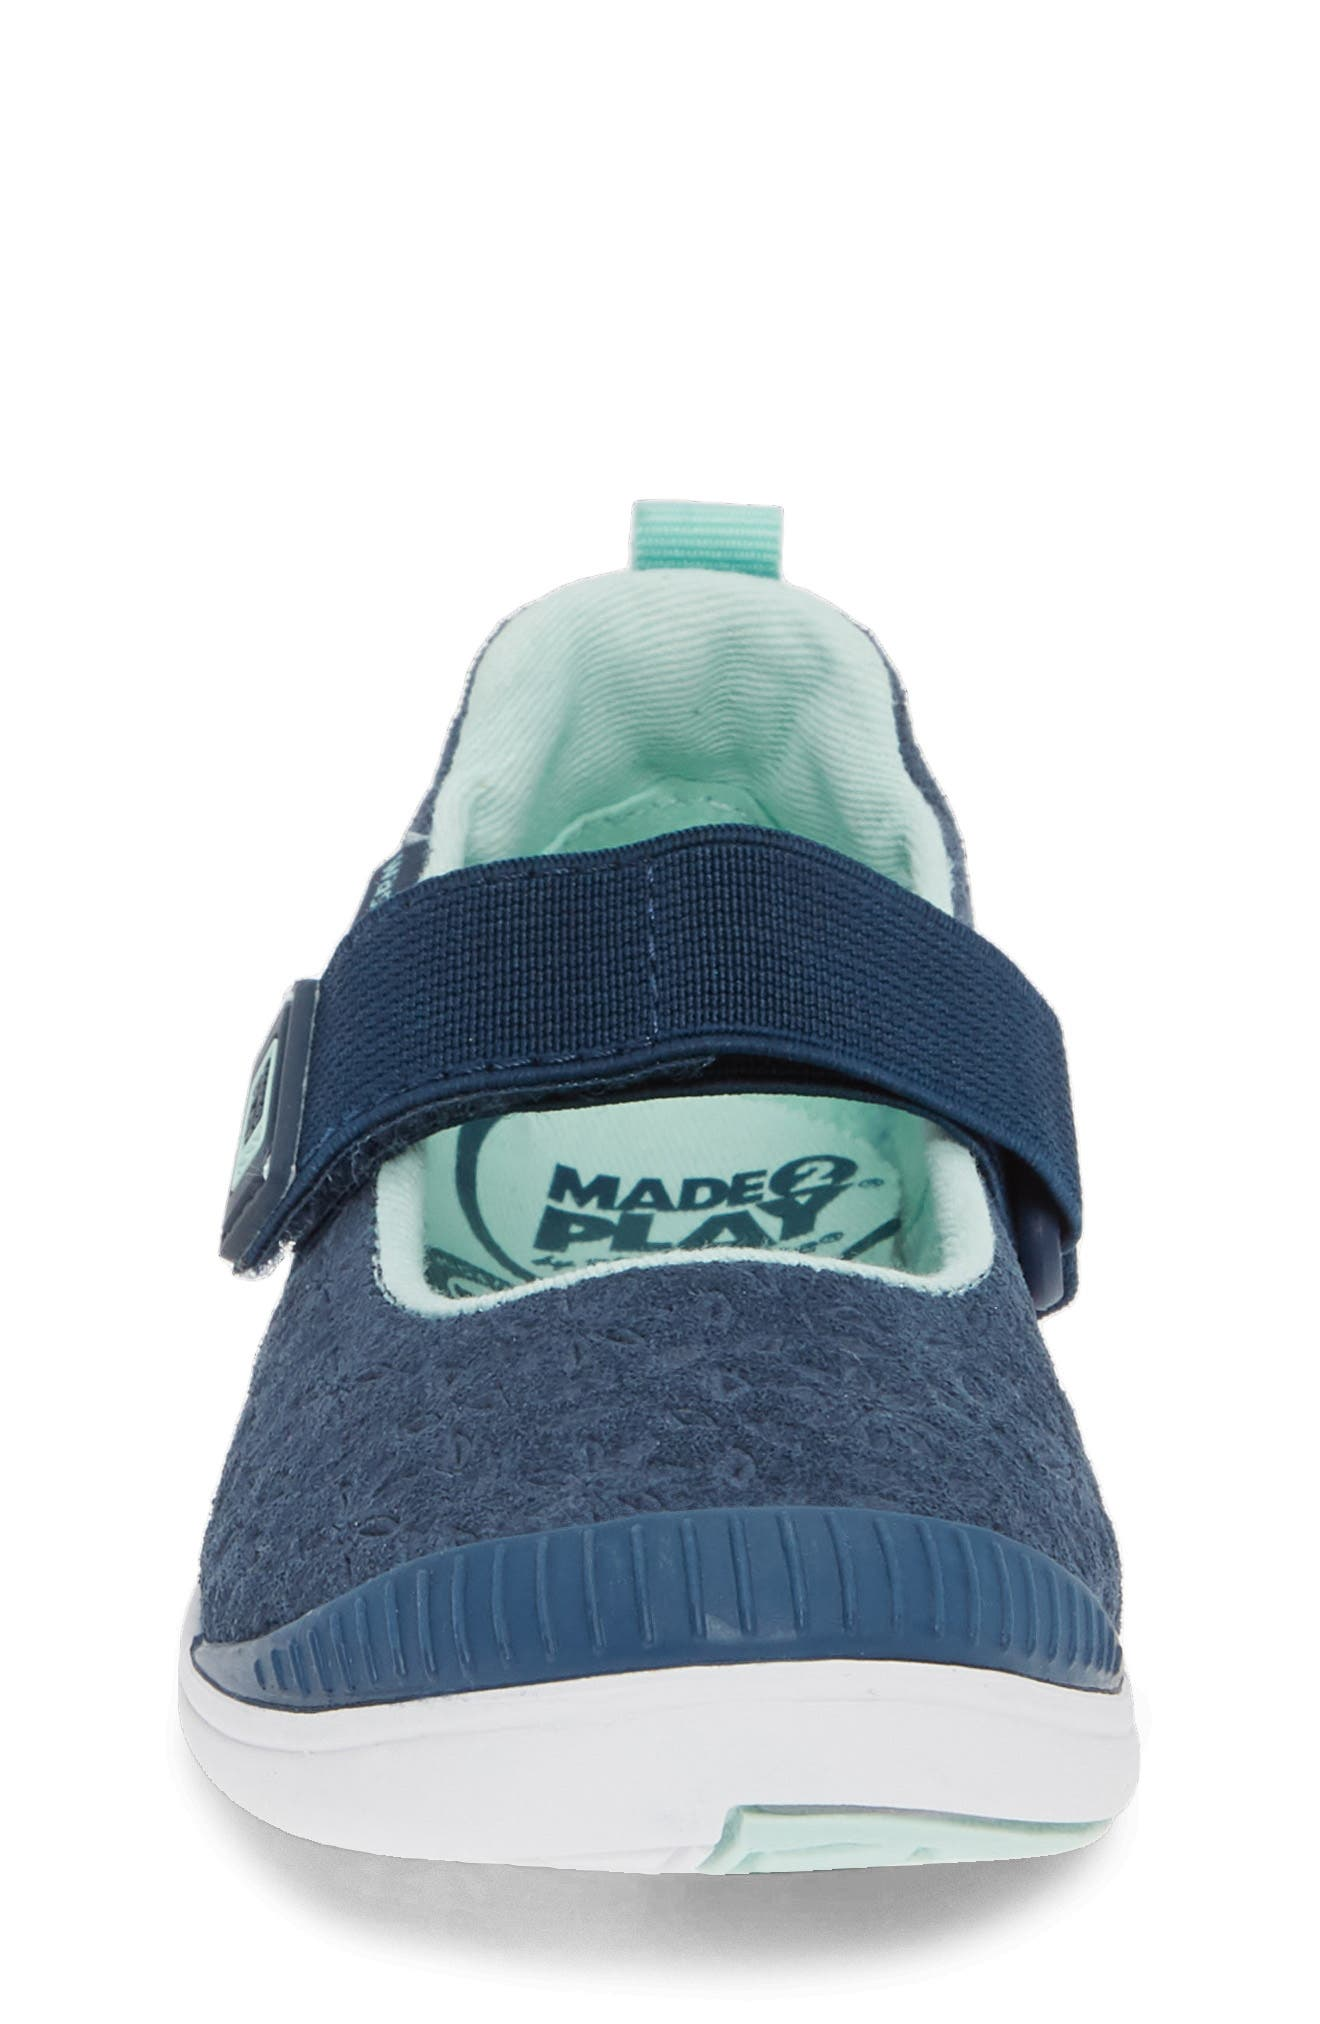 Made2Play<sup>®</sup> Lia Washable Mary Jane Sneaker,                             Alternate thumbnail 4, color,                             NAVY